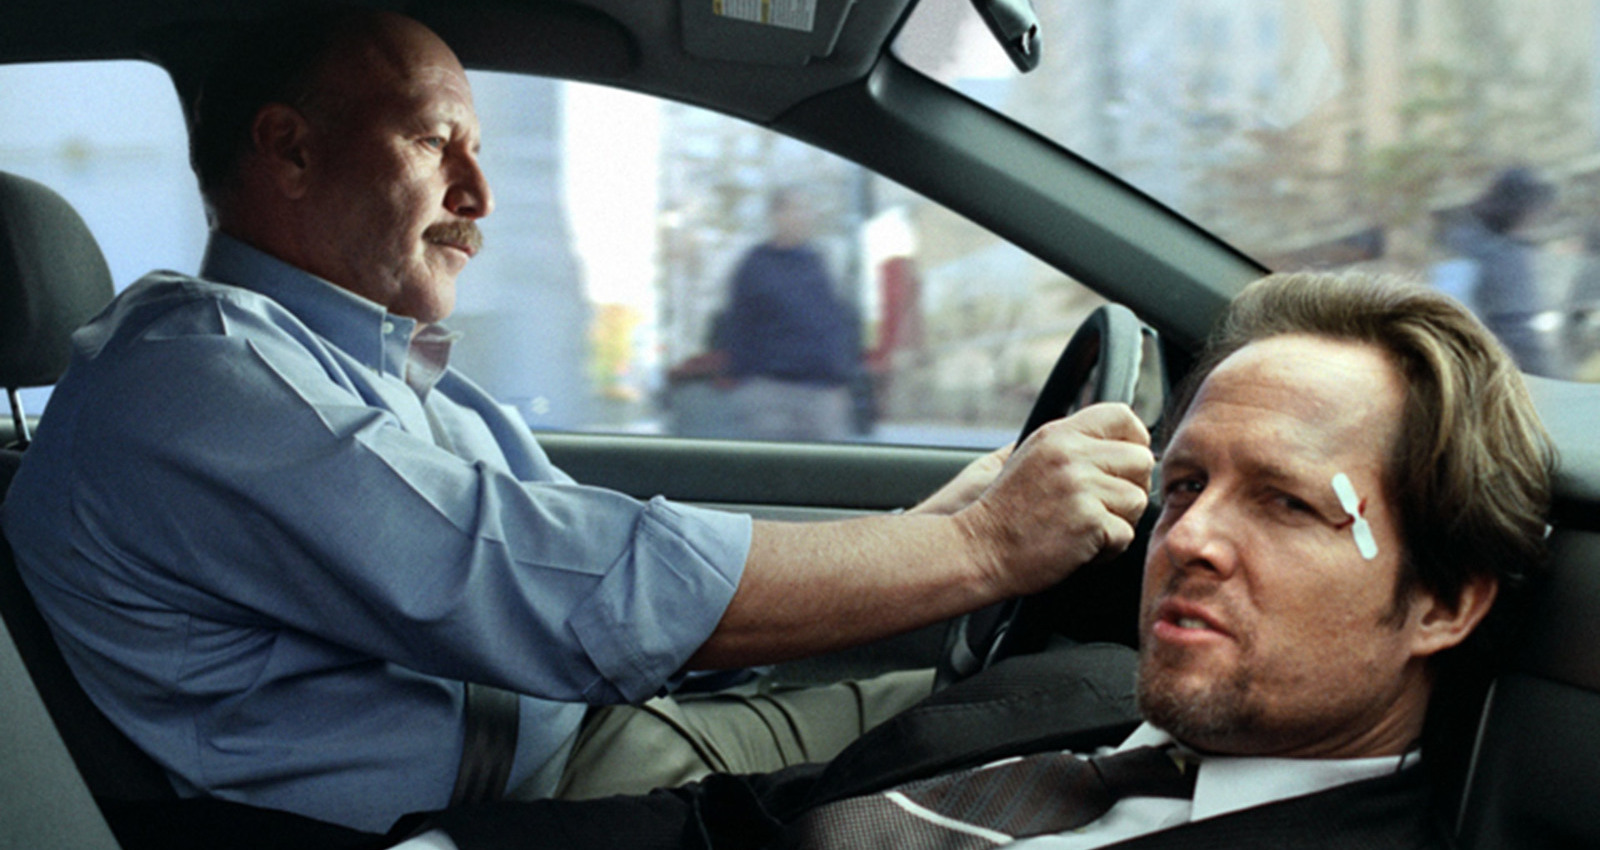 Accidents can be overwhelming - Sideswiped